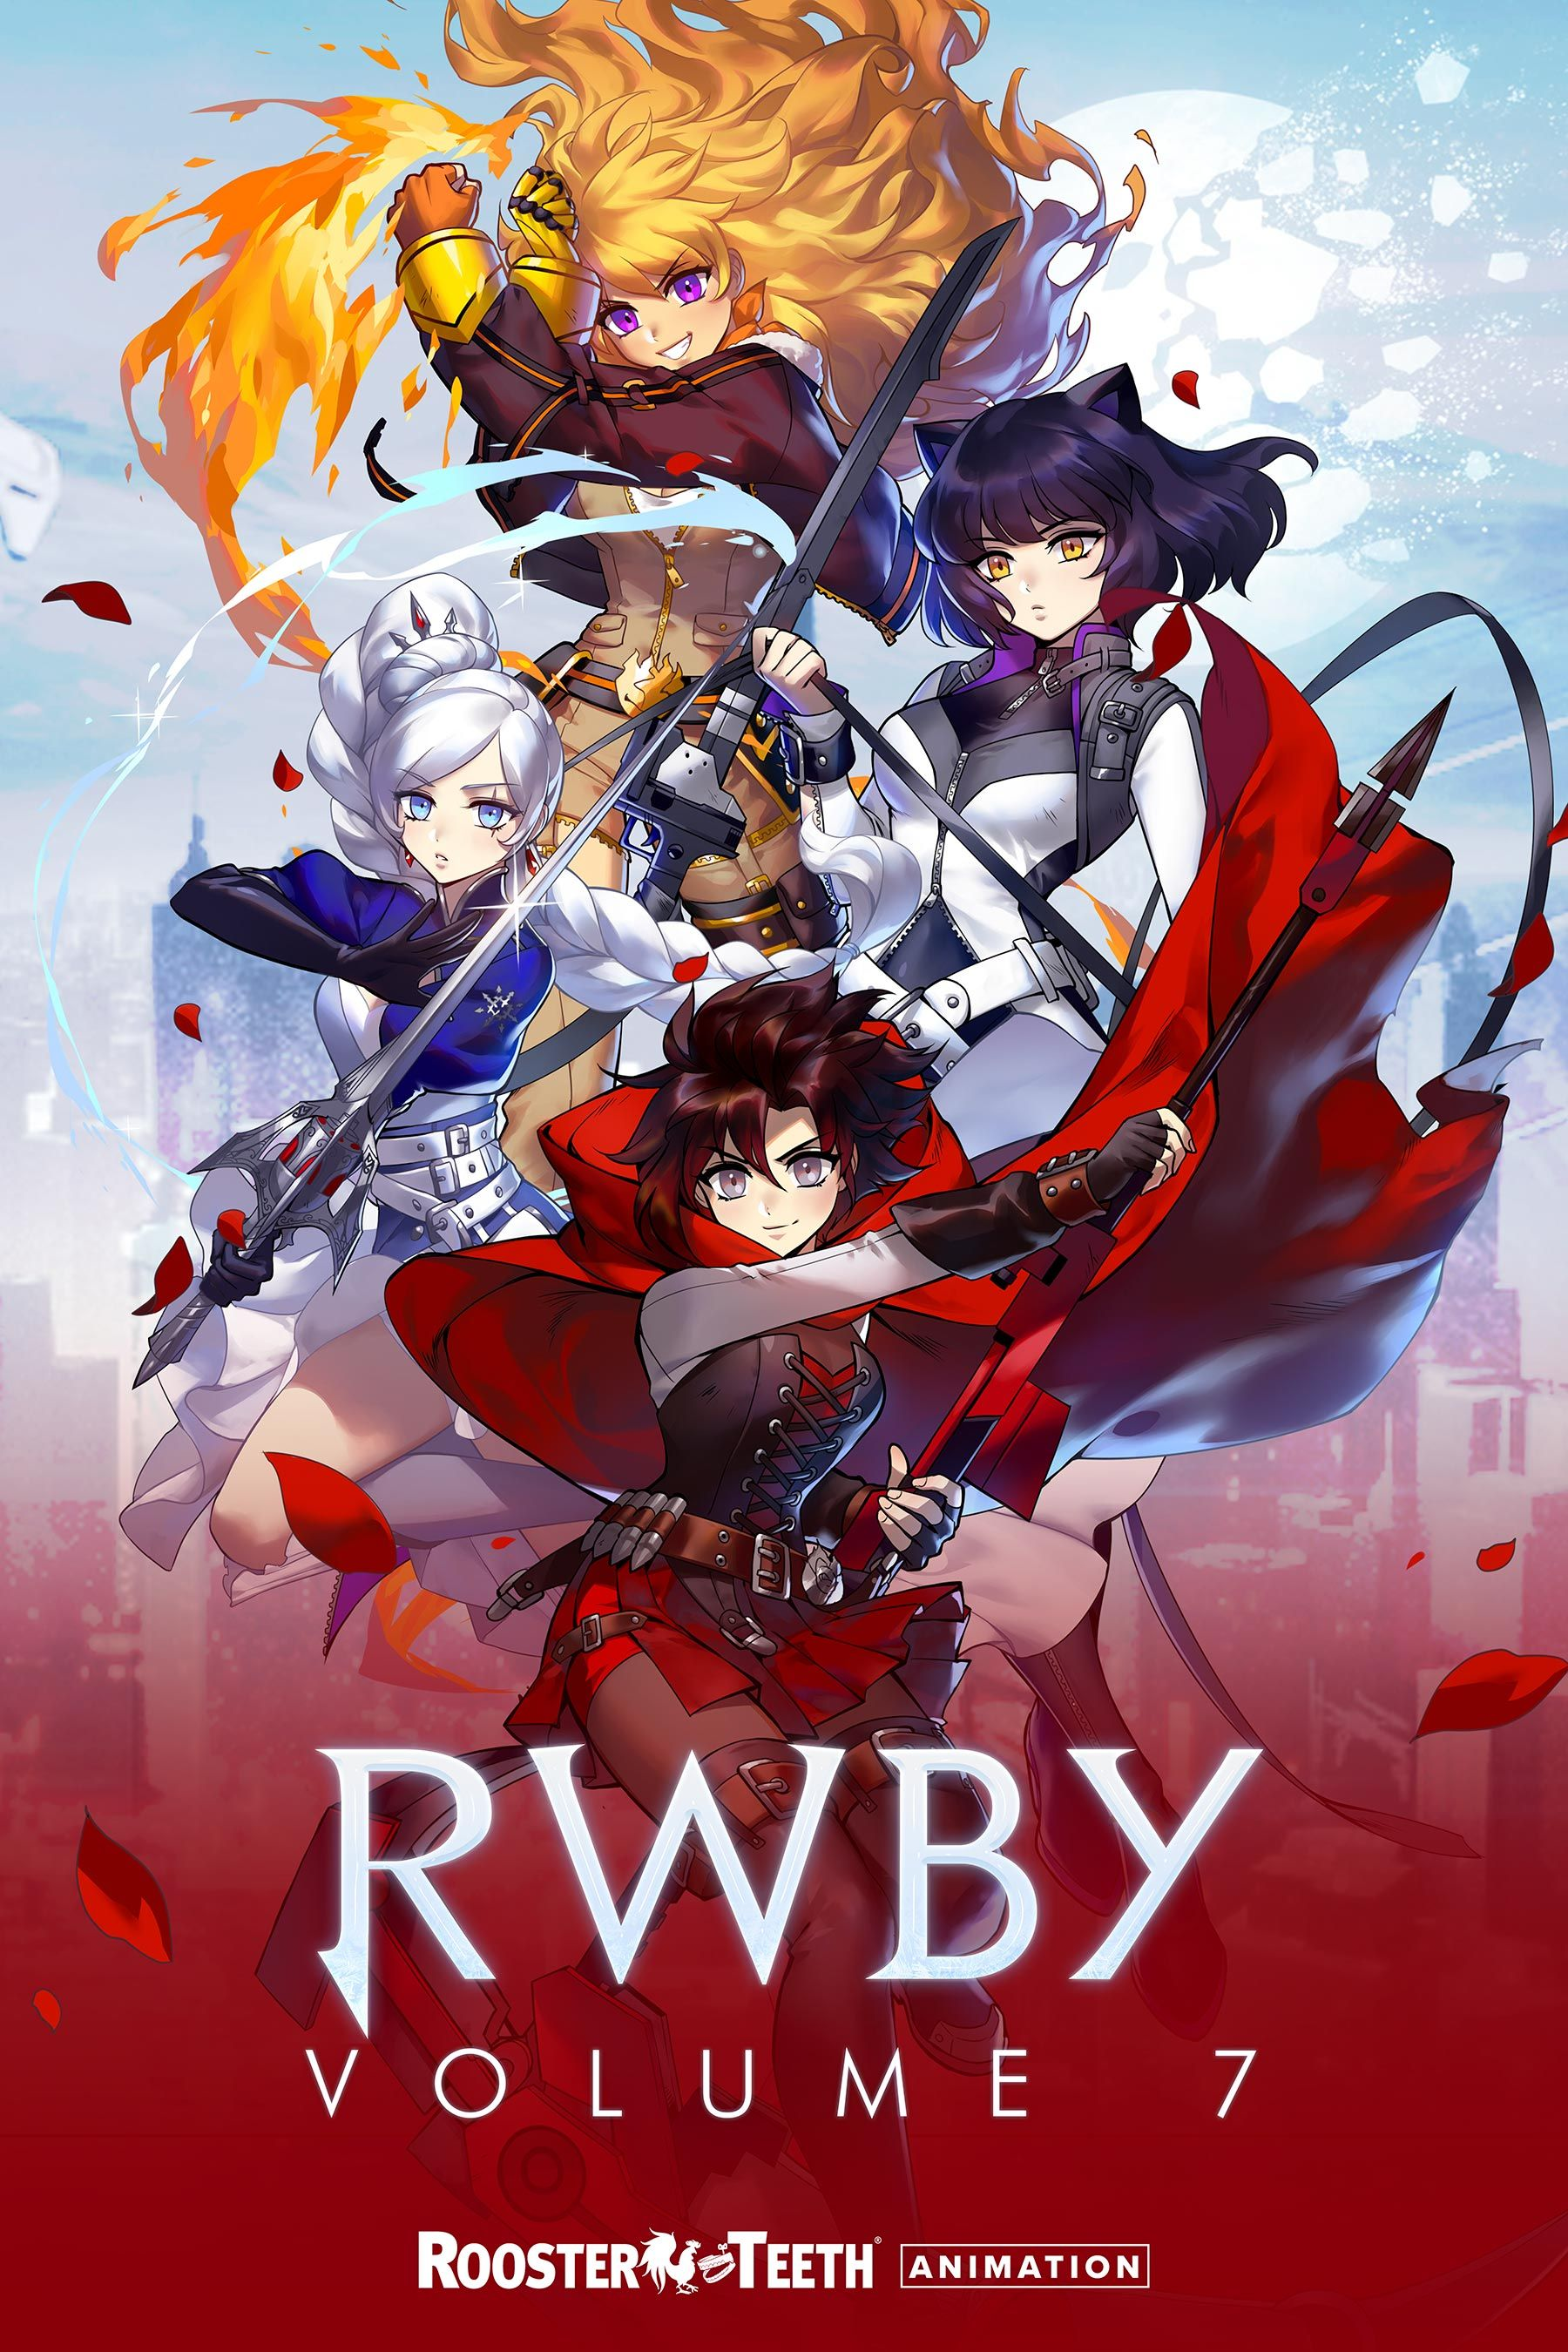 'RWBY' Volume 7 premiere date and plot details revealed